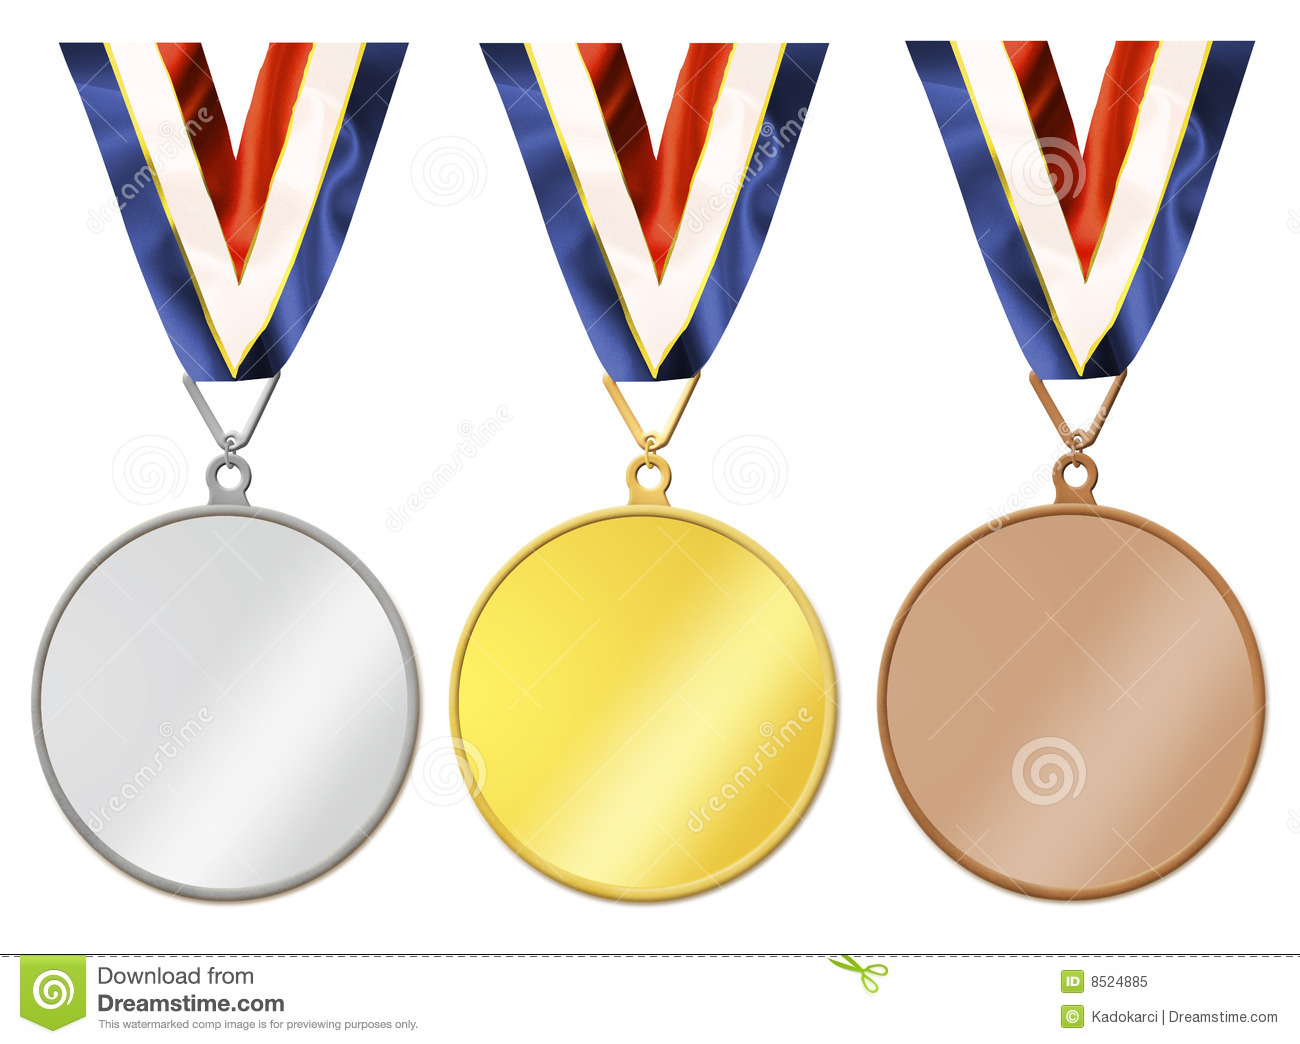 Blank Medals Royalty Free Stock Photo - Image: 8524885